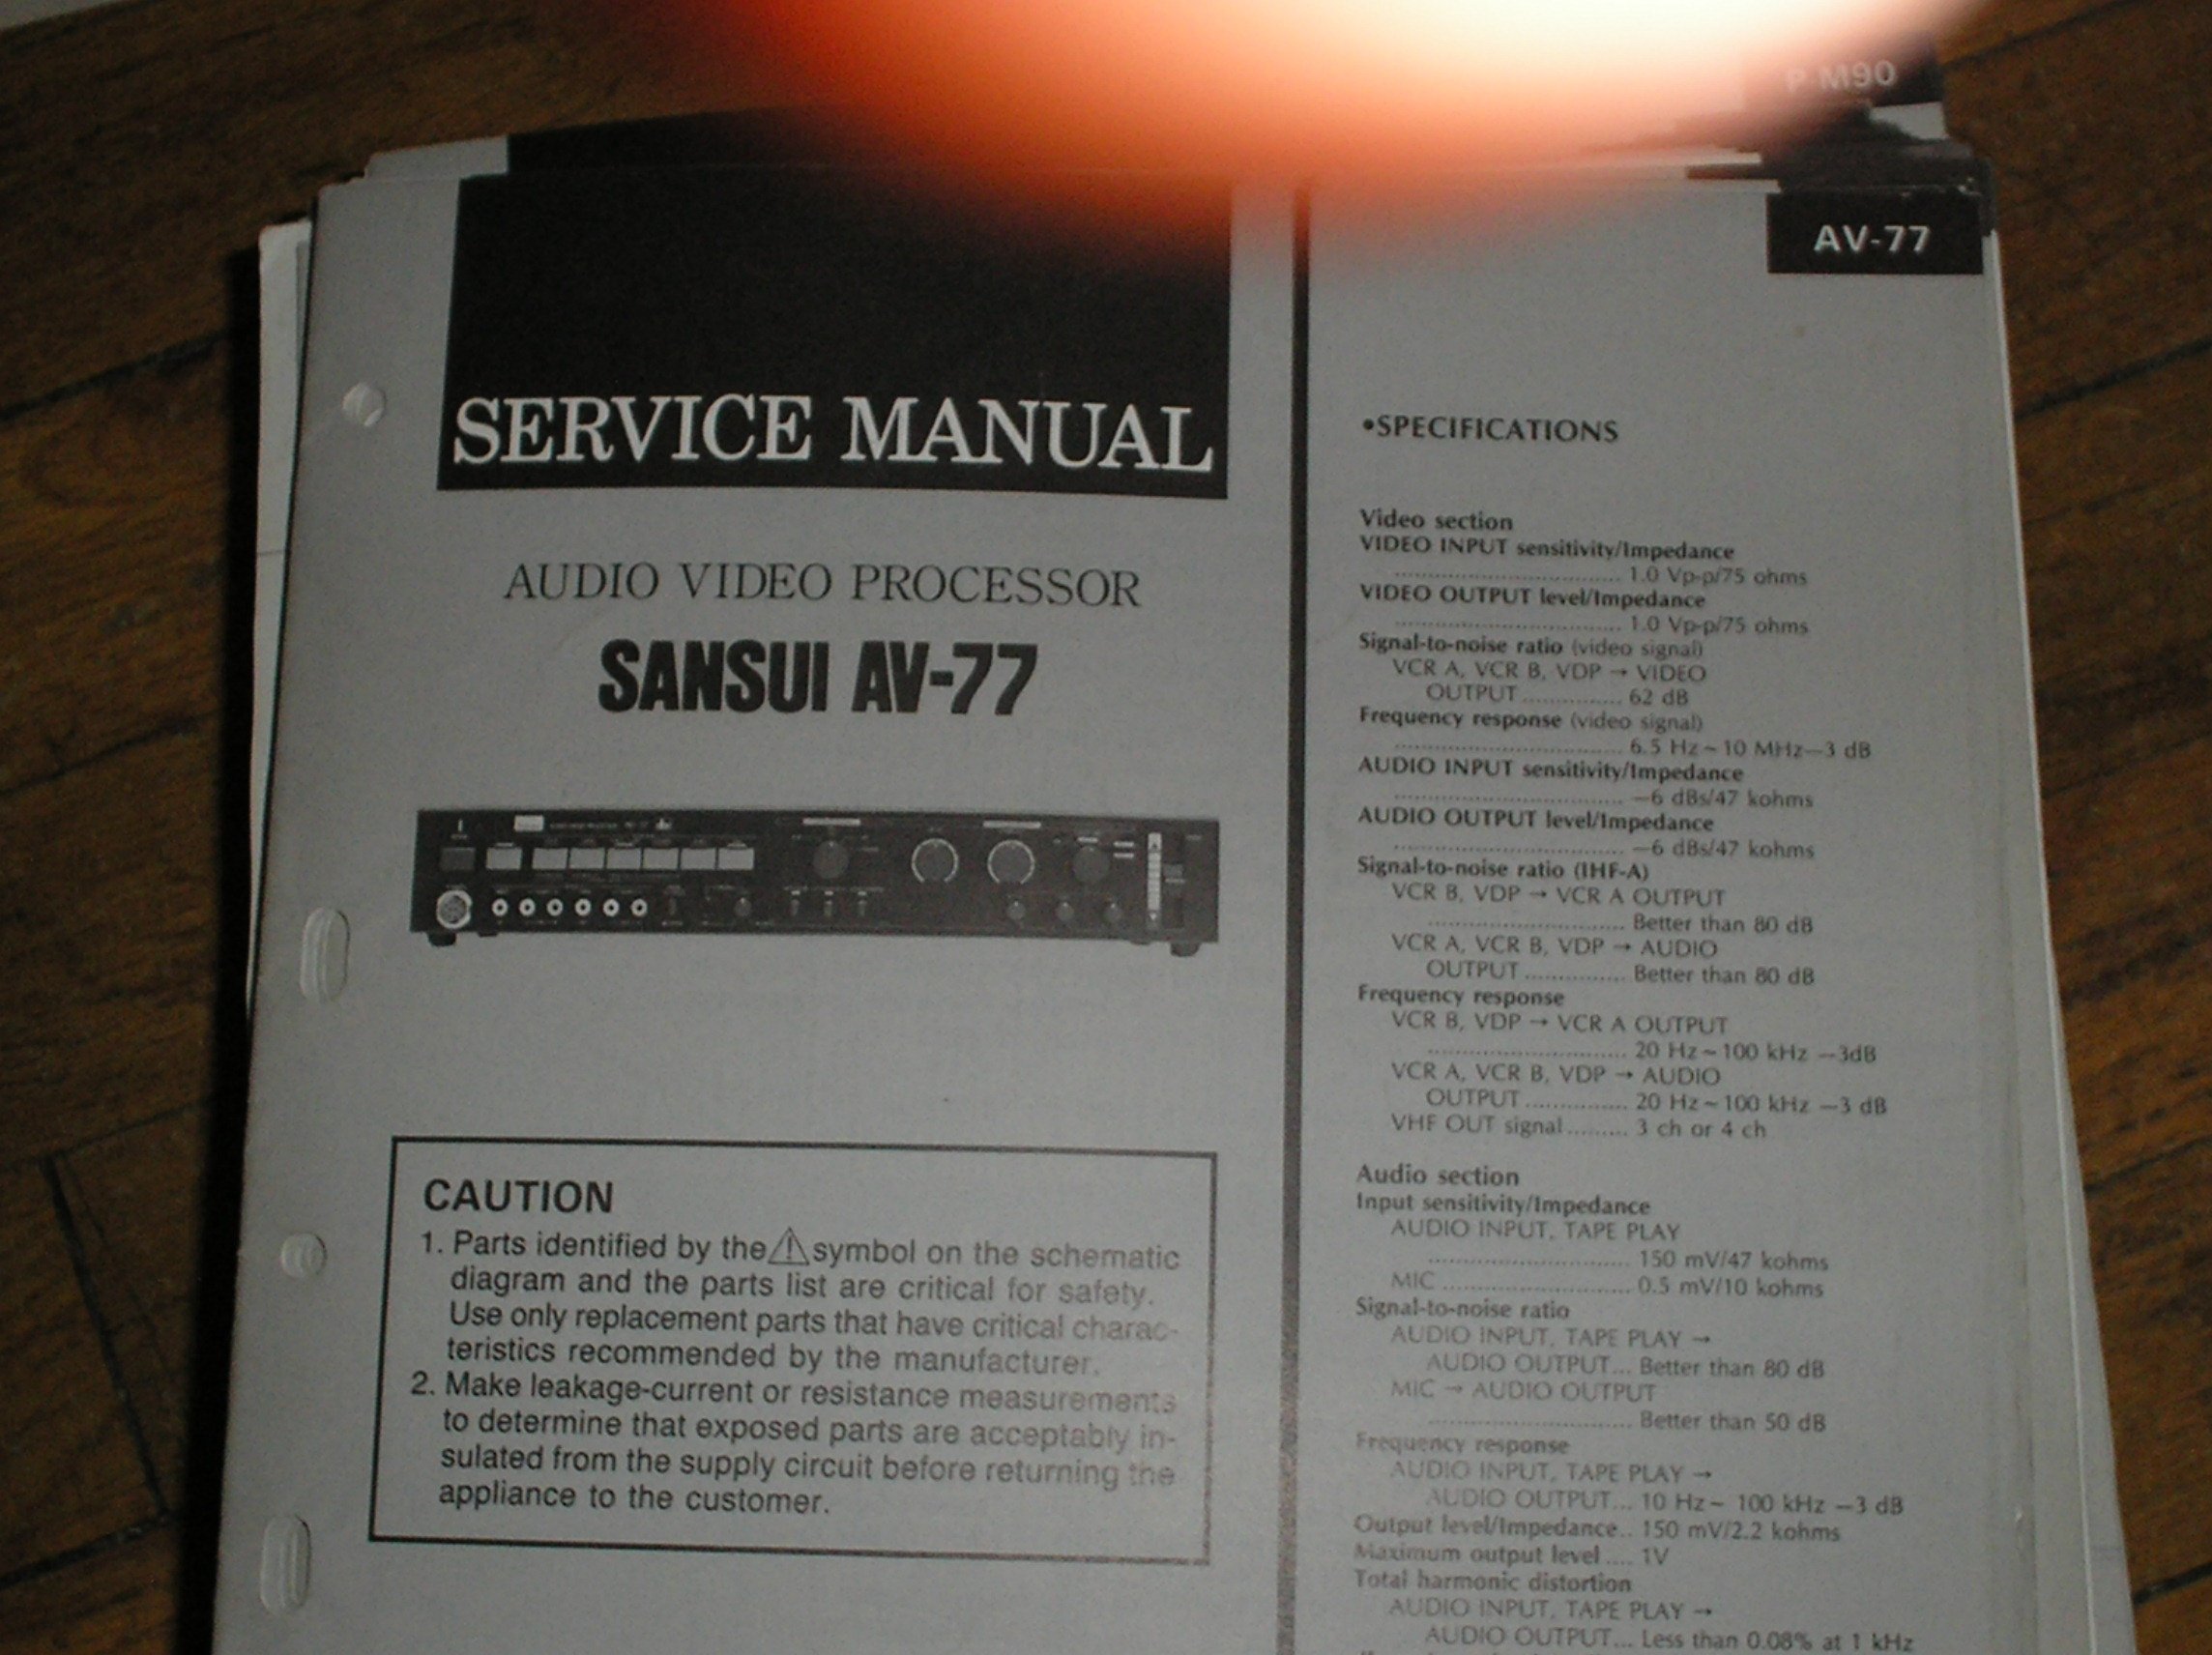 AV-77 Audio Video Processor Service Manual